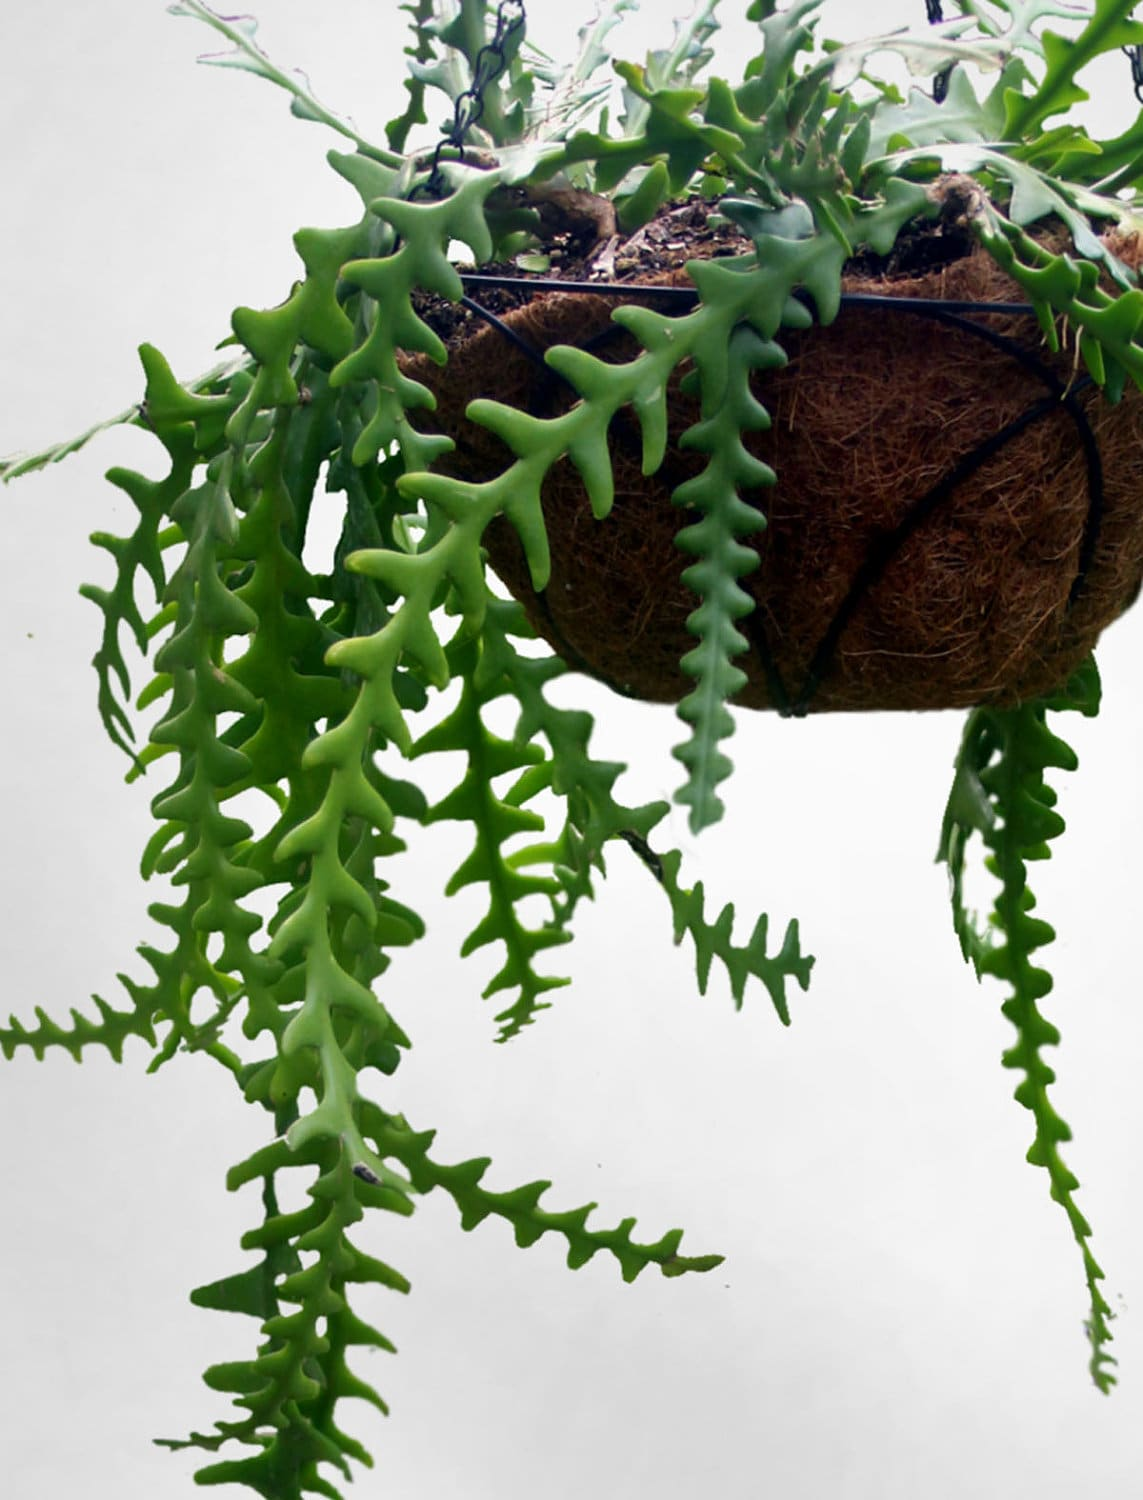 Draping Plants Fern Leaf Cactus Hard To Find Cati With Amazing Draping Fern